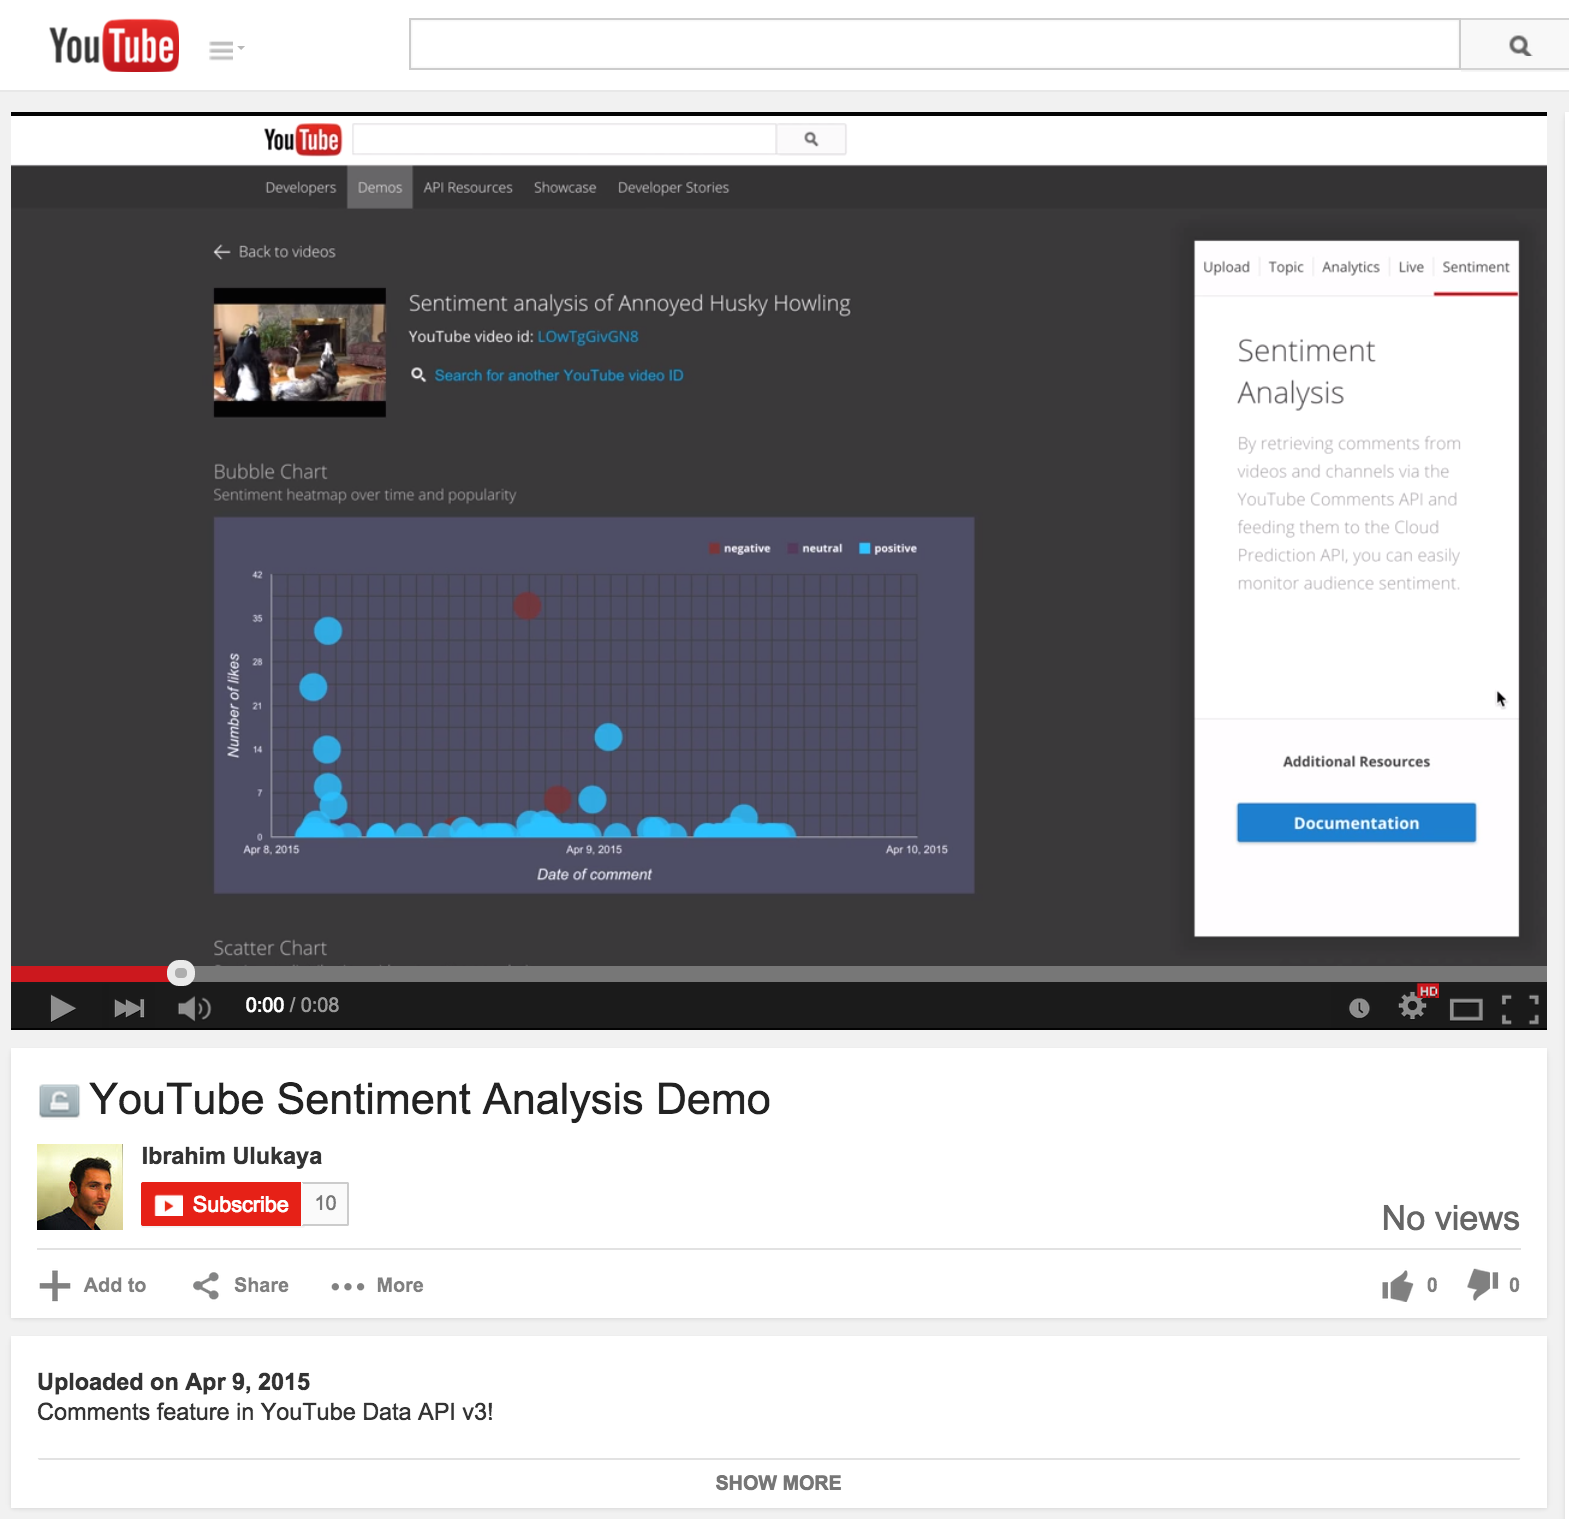 YouTube Sentiment Analysis Demo